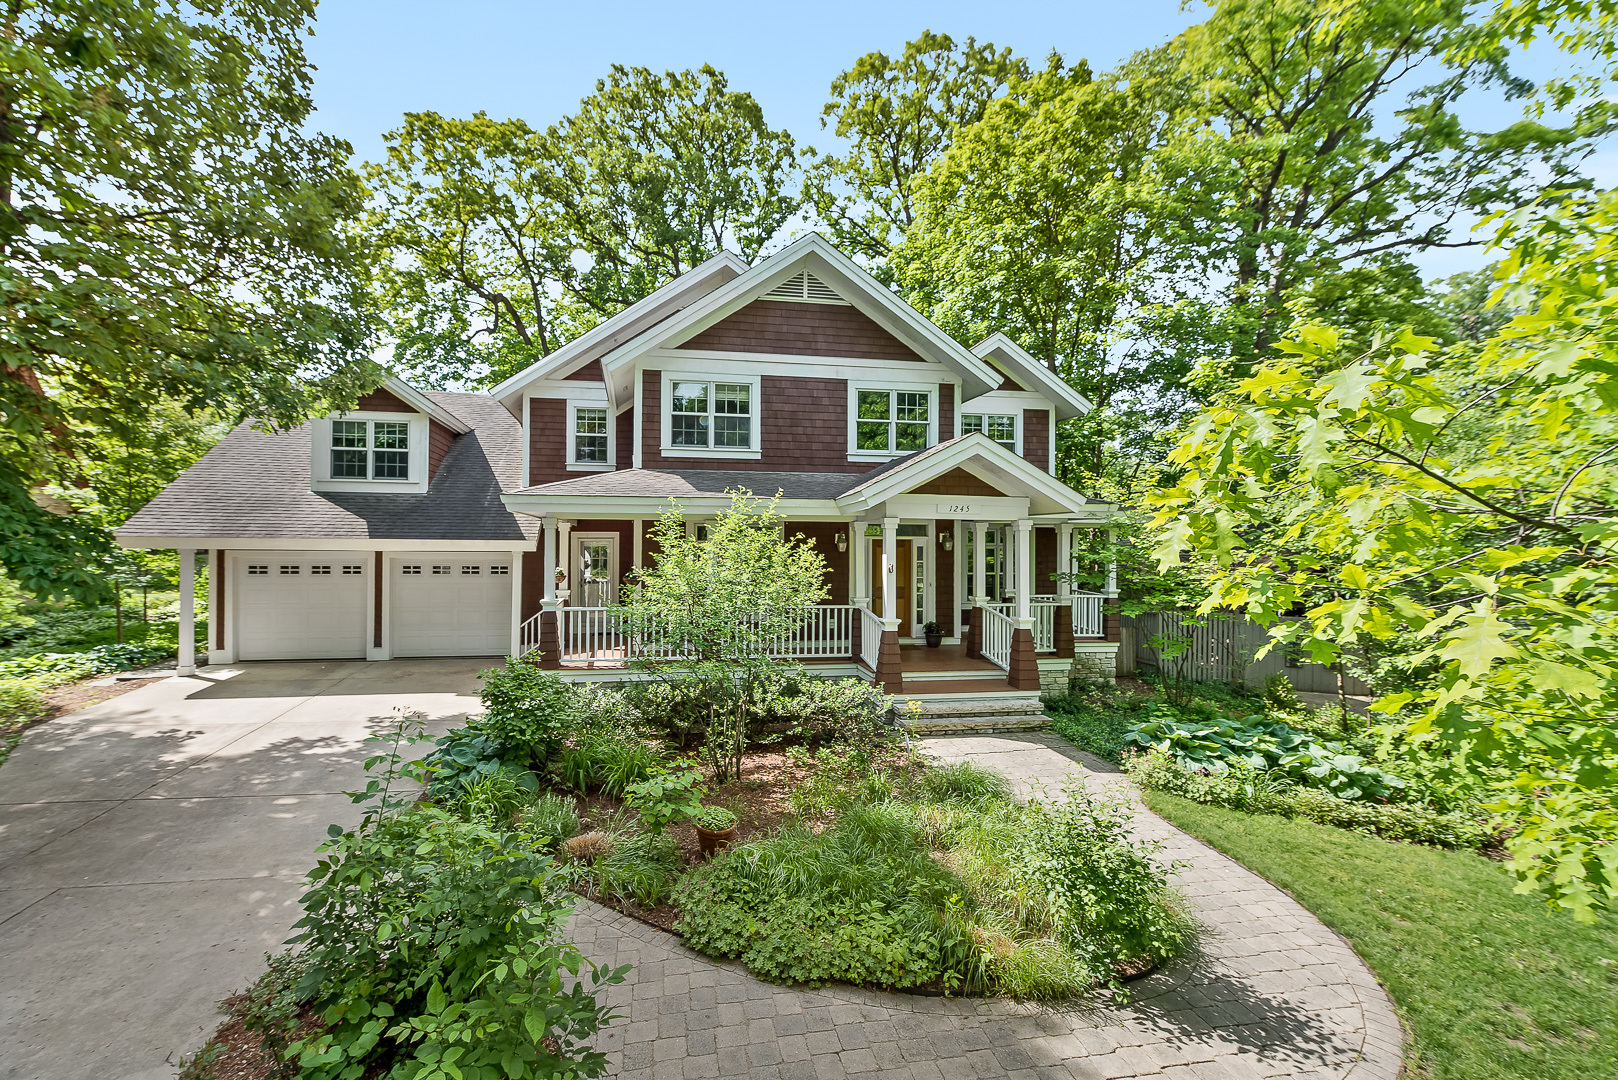 Photo for 1245 Hawthorne Lane, DOWNERS GROVE, IL 60515 (MLS # 10342528)